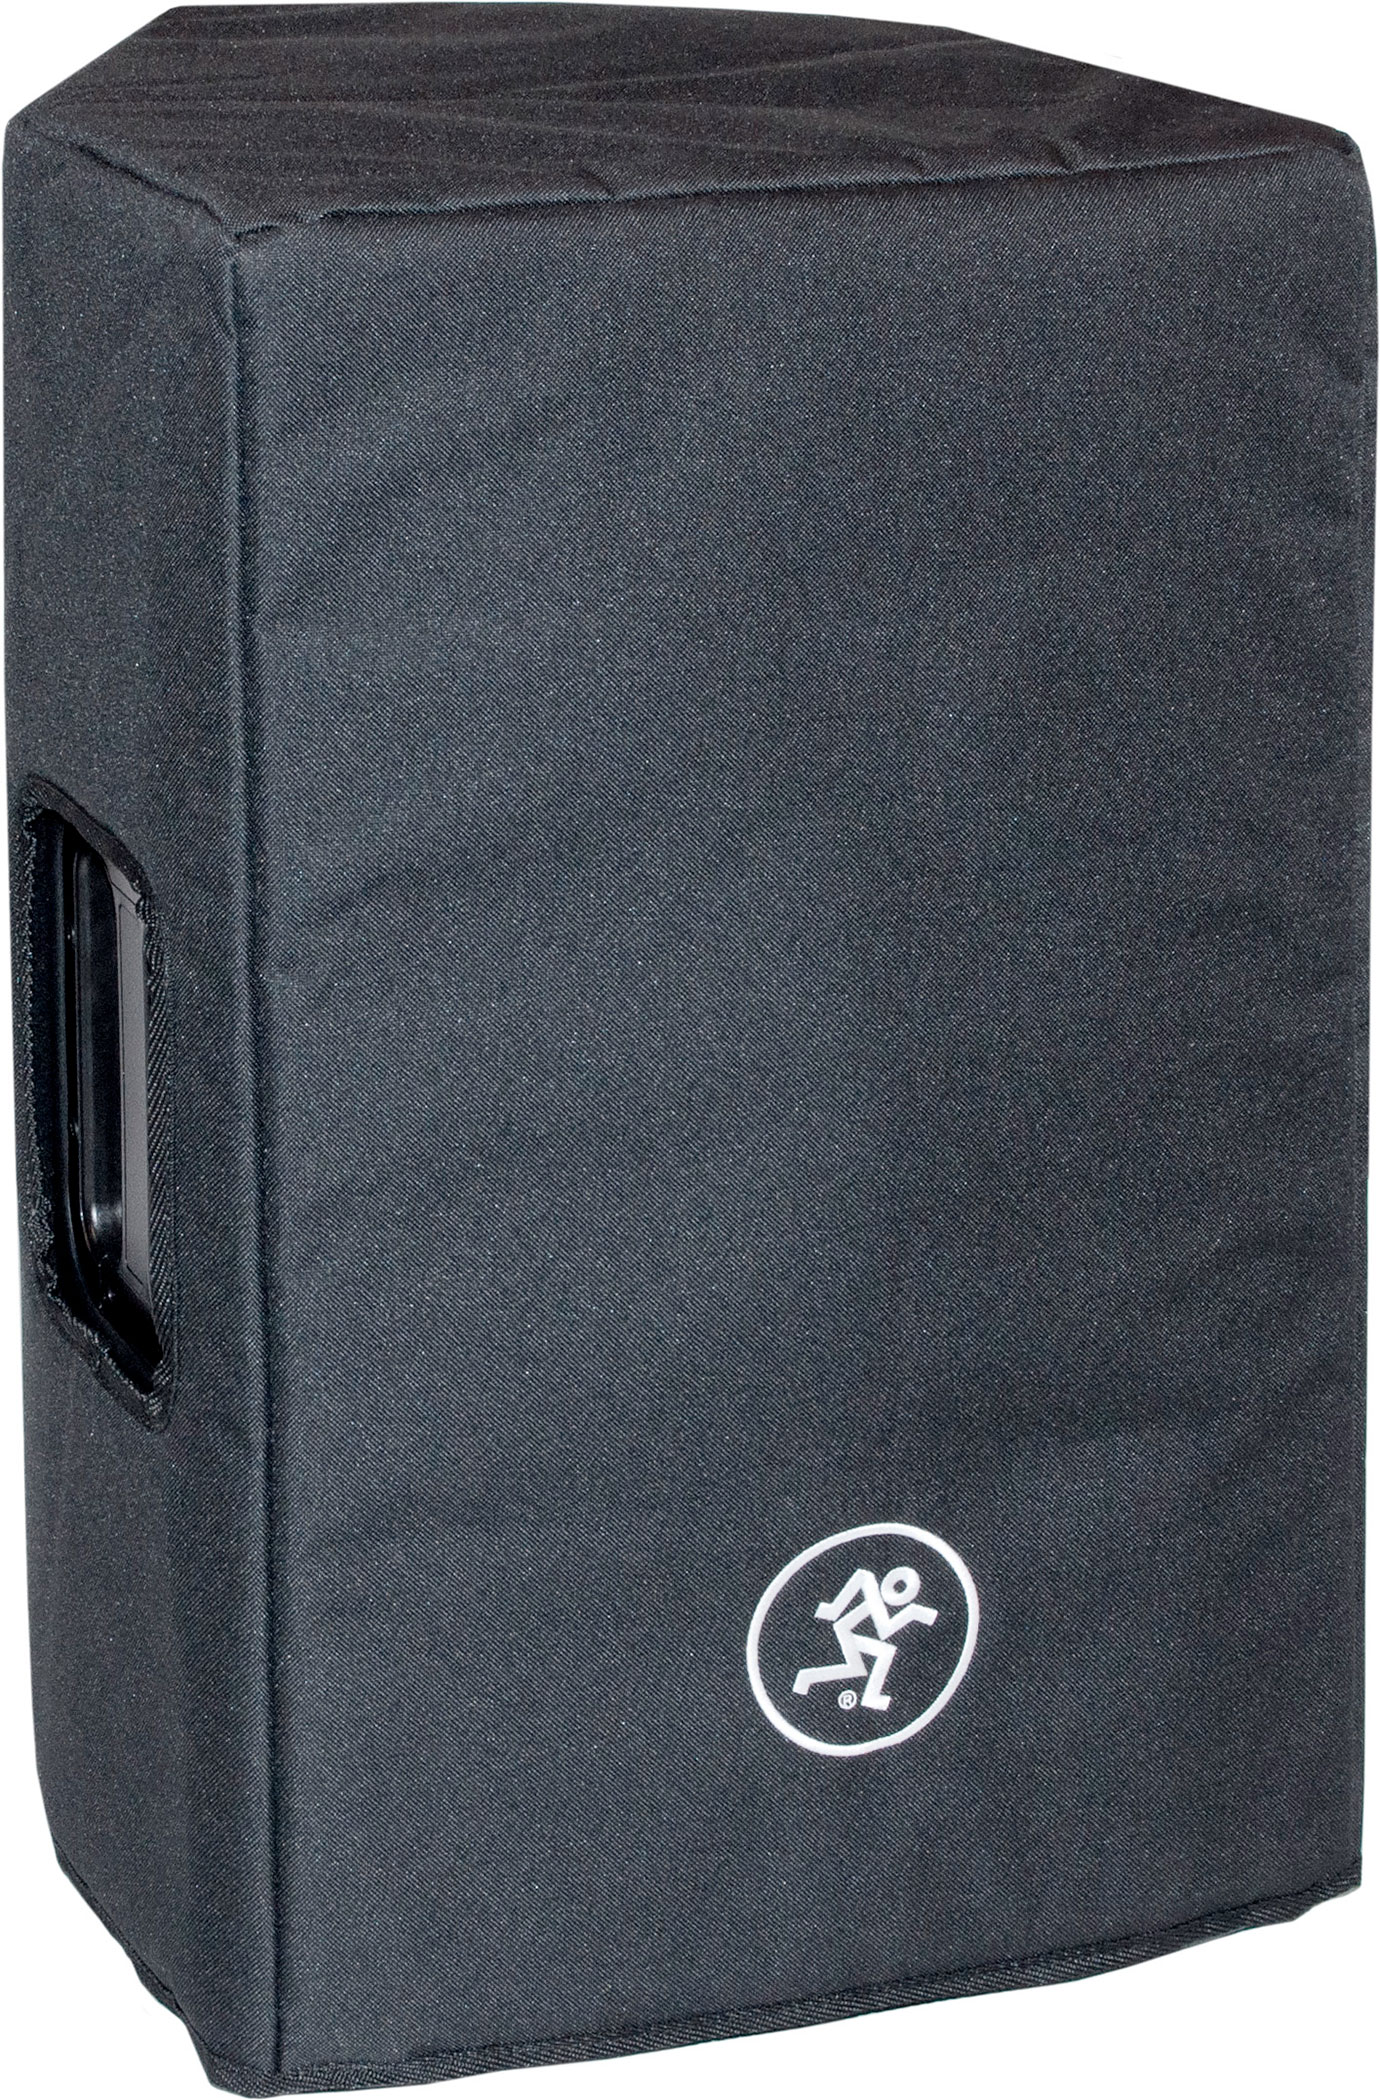 MACKIE SRM550 COVER